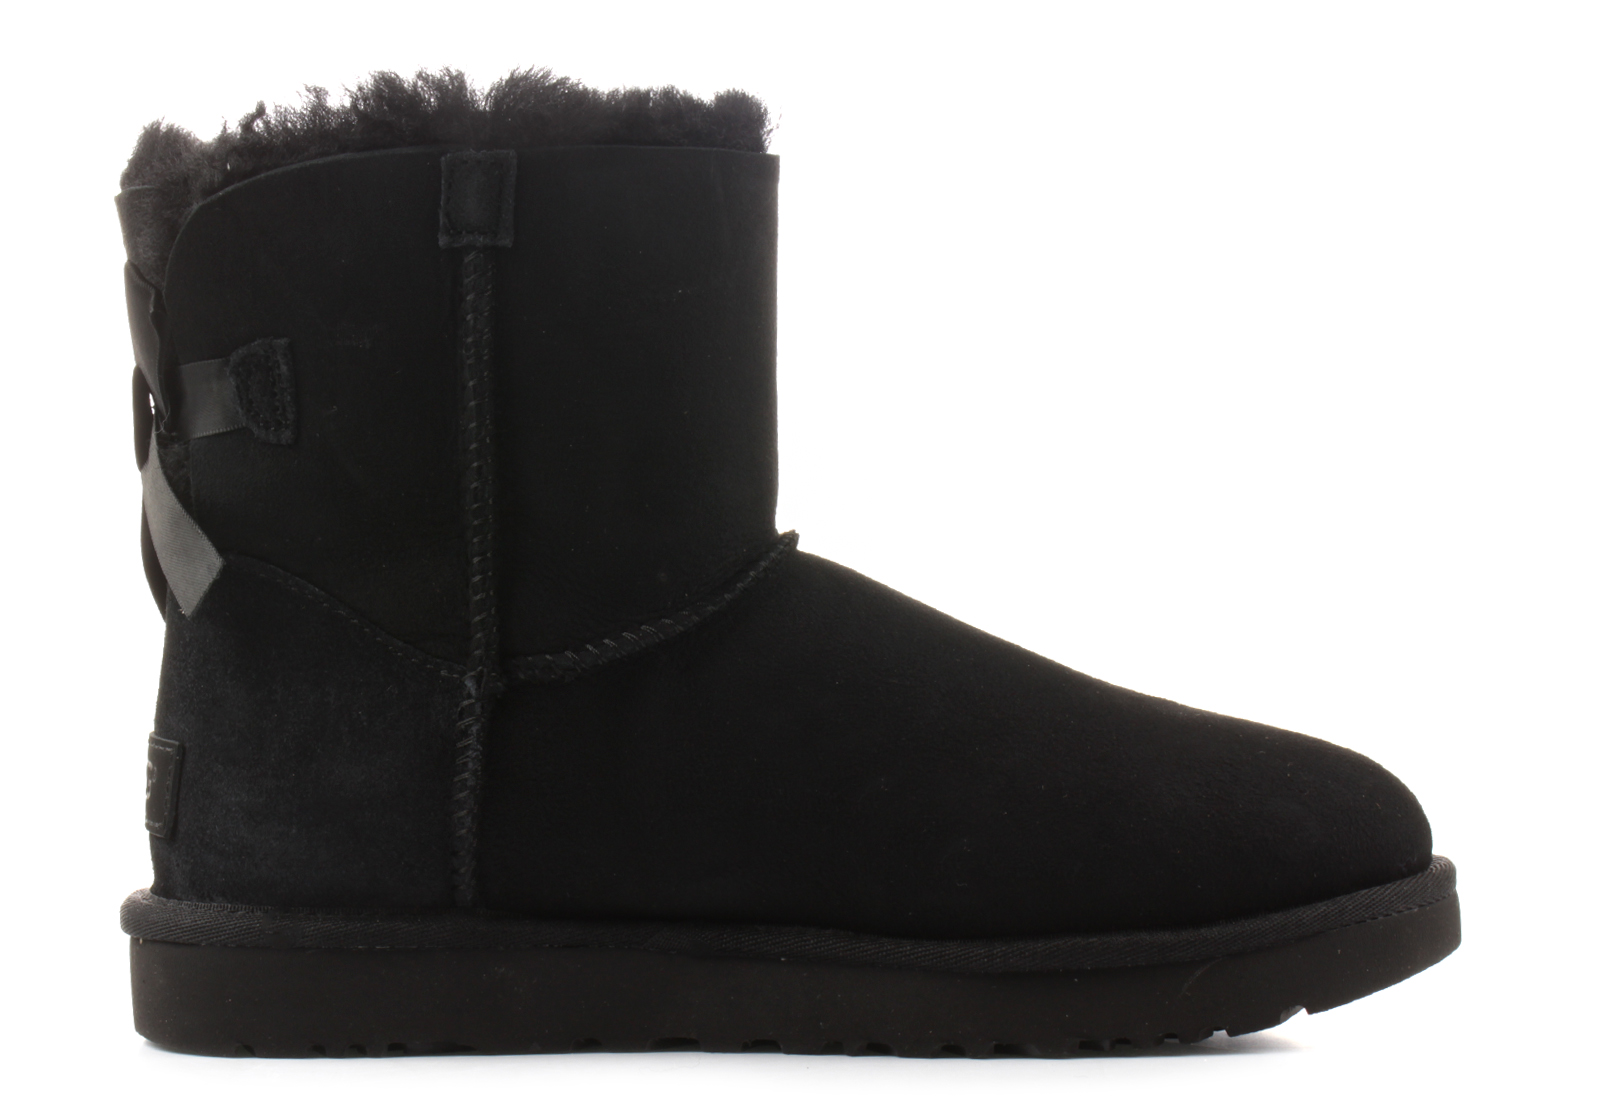 98e26dd51f8 Ugg Boots - Mini Bailey Bow Ii - 1016501-BLK - Online shop for sneakers,  shoes and boots